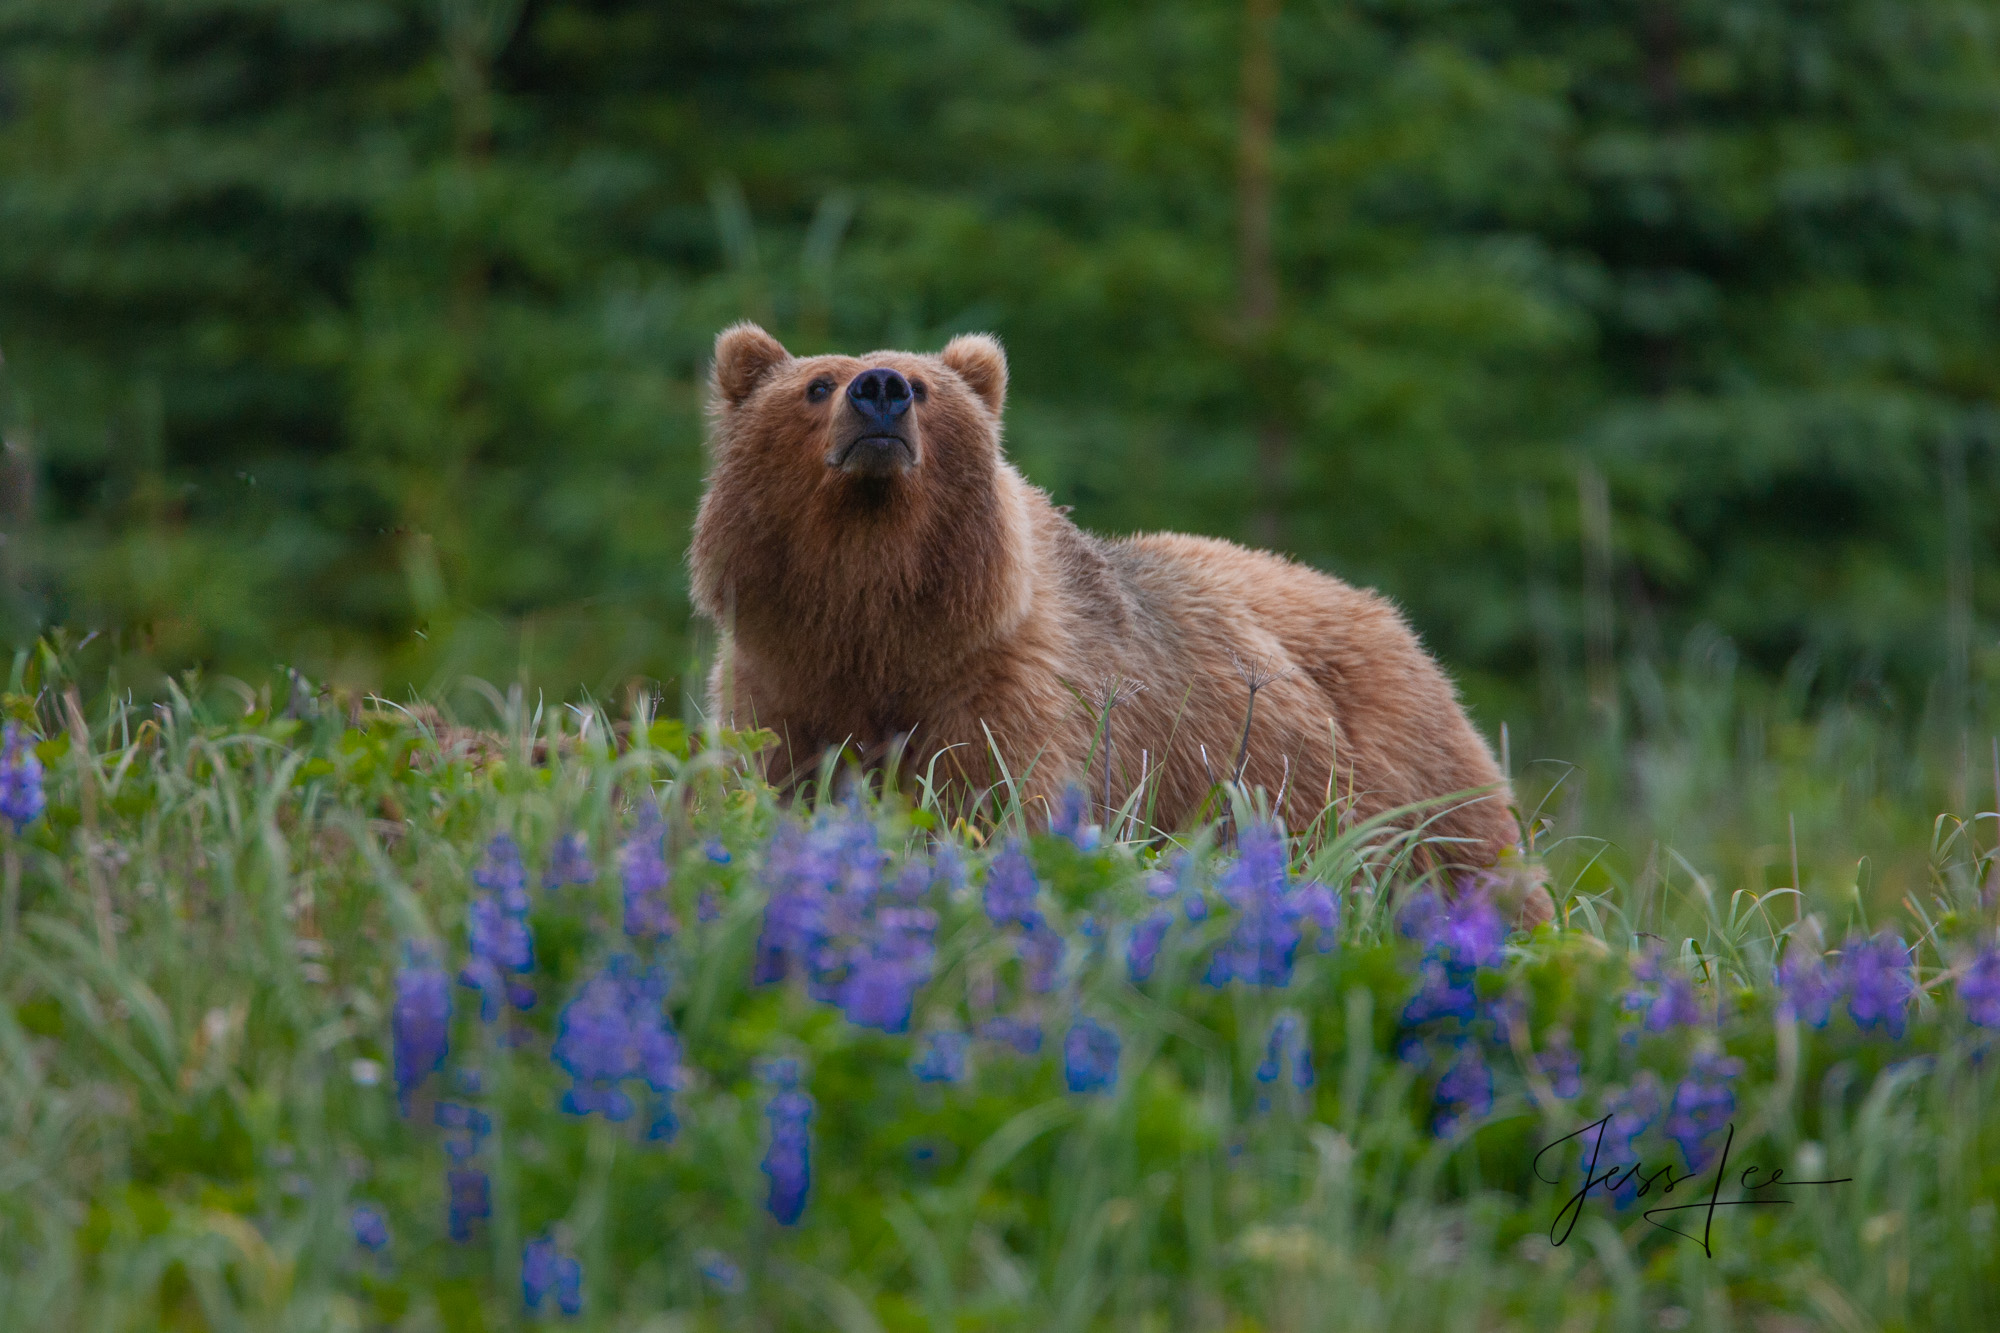 Alaska Grizzly sniffing the air. Limited edition of 800 prints. These Grizzly bear fine art wildlife photographs are offered...